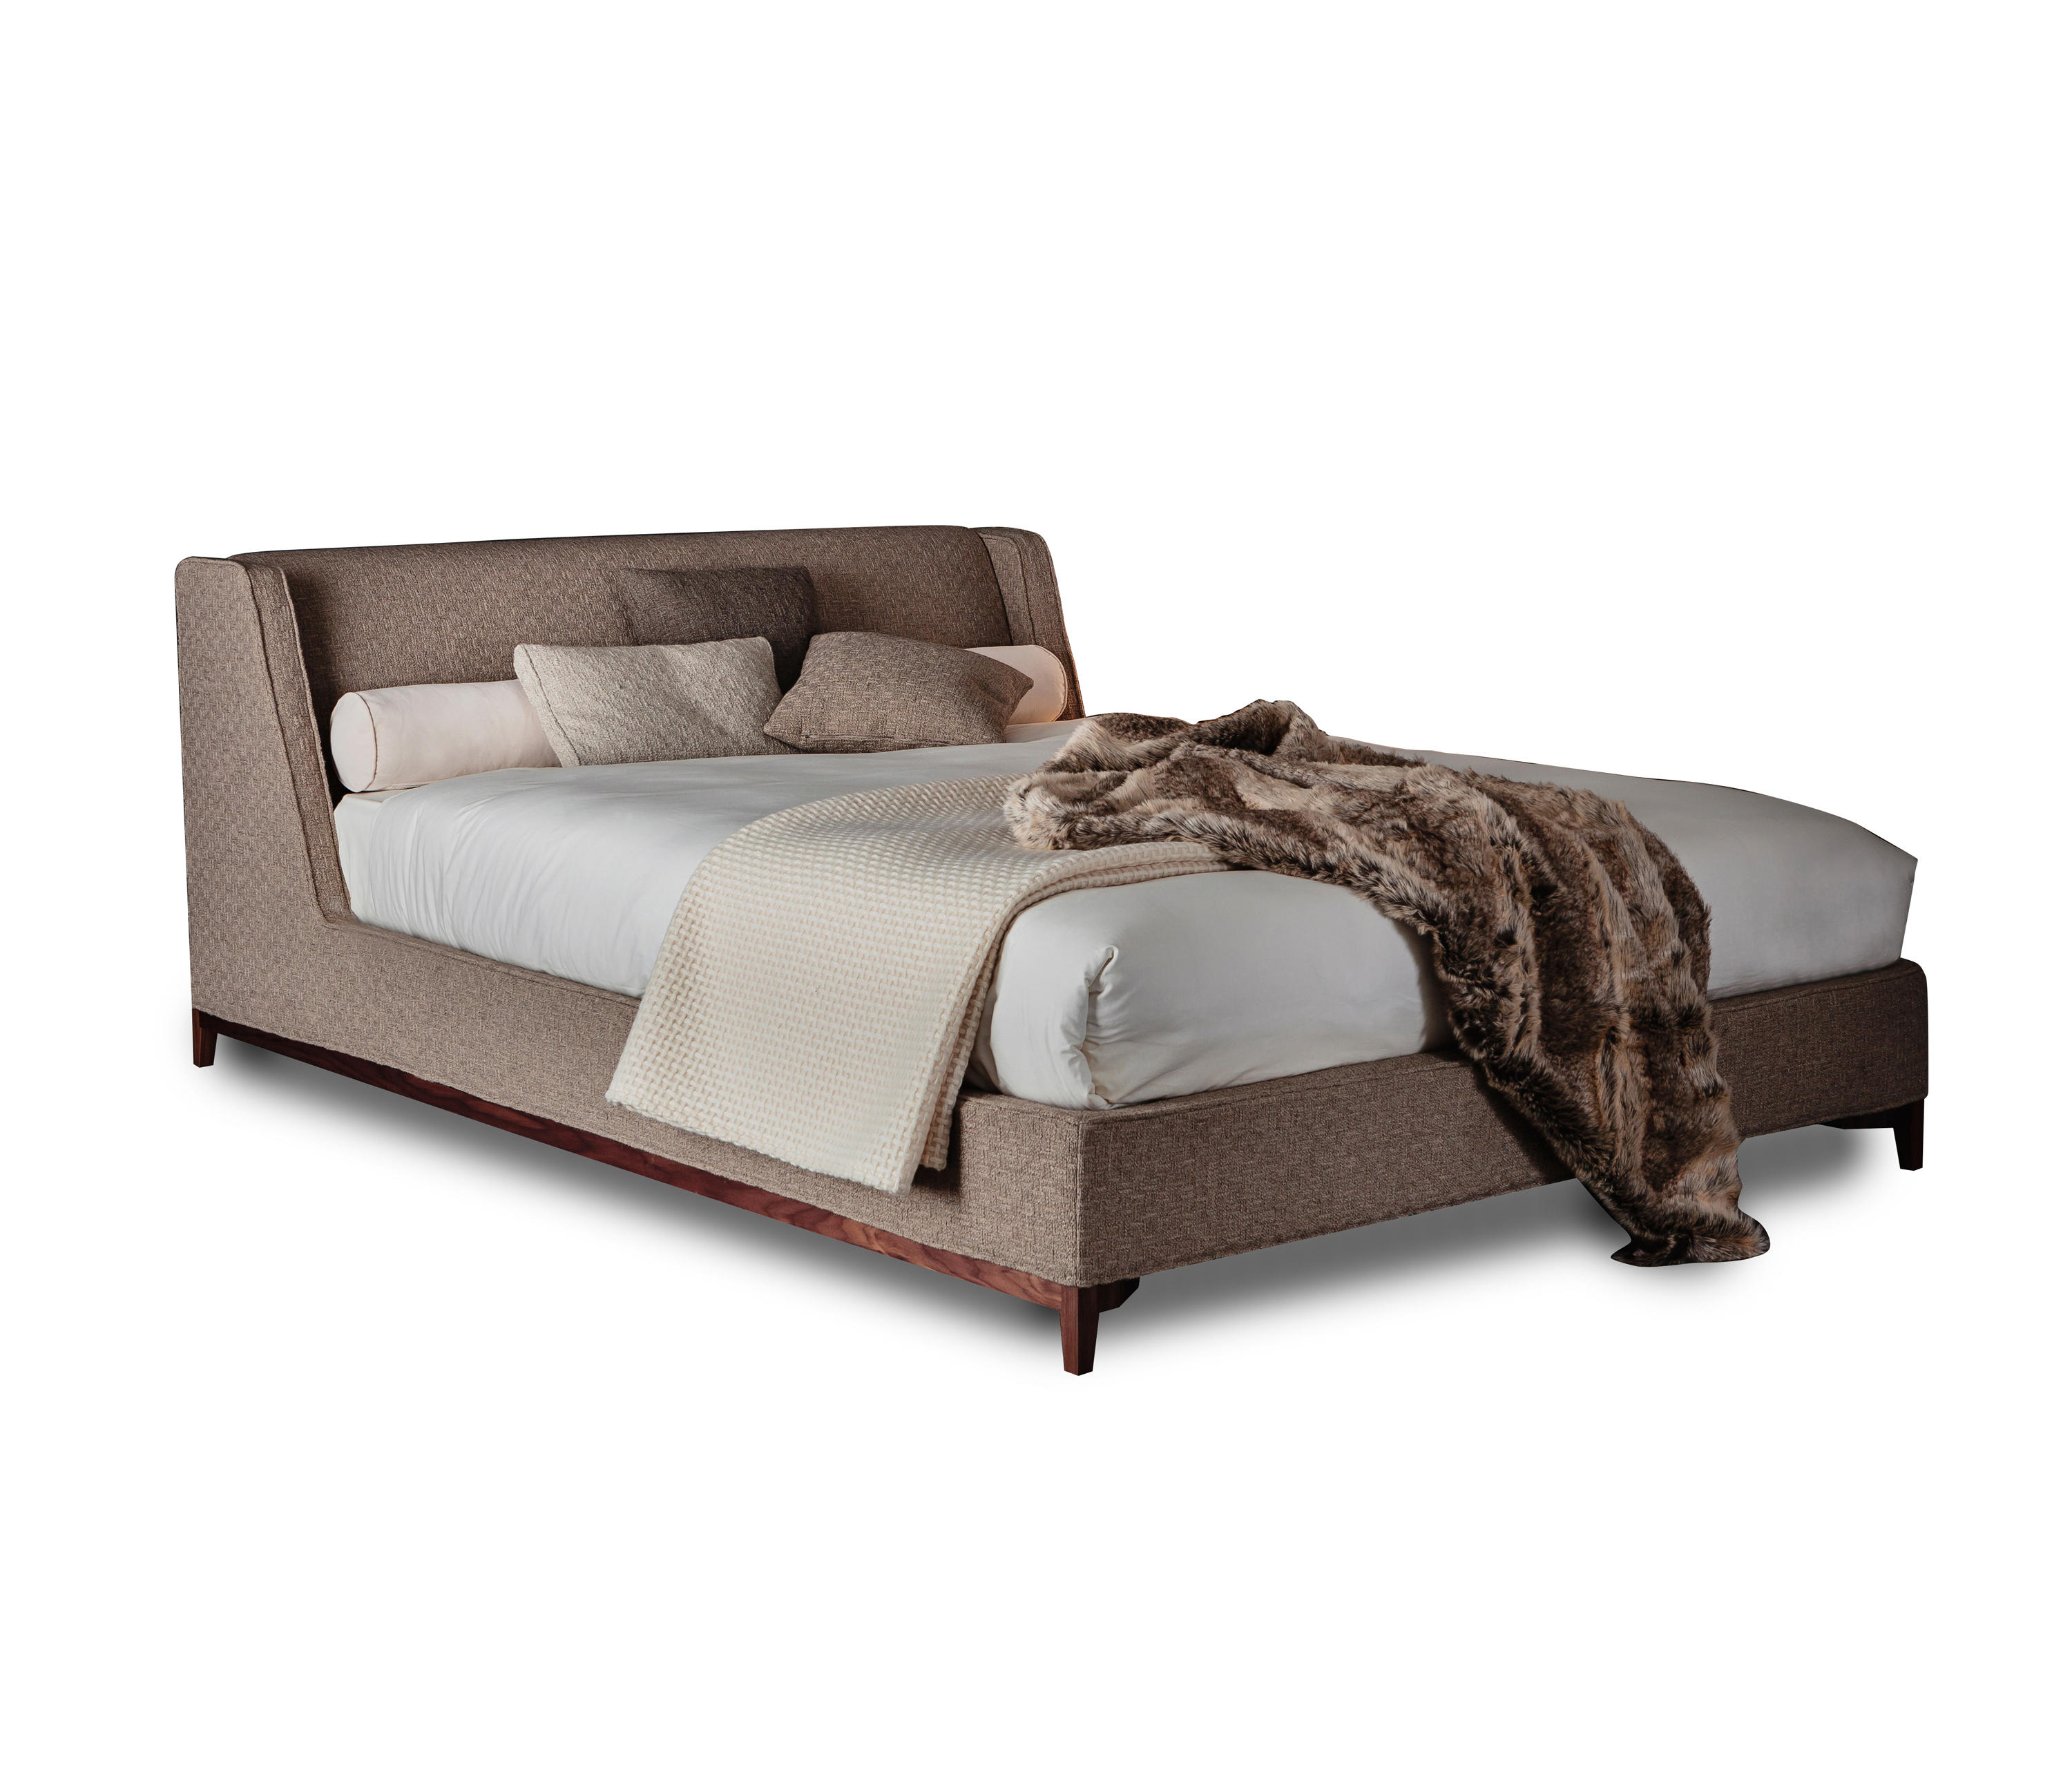 Queen 2300 Bed Double Beds From Vibieffe Architonic